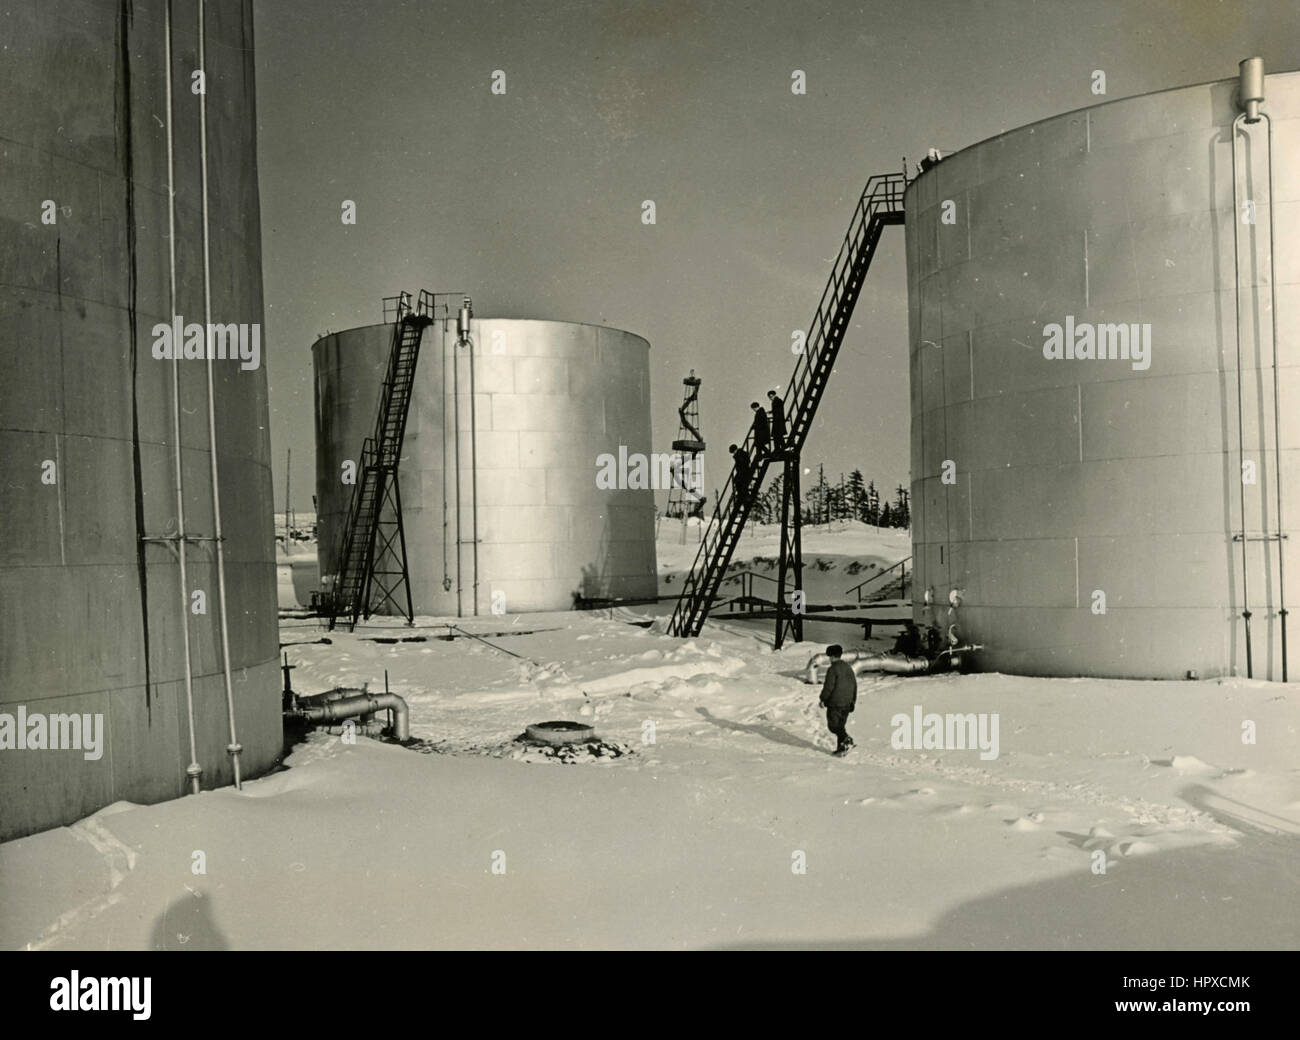 Oil containers Kalendo, Sakhalin, USSR - Stock Image